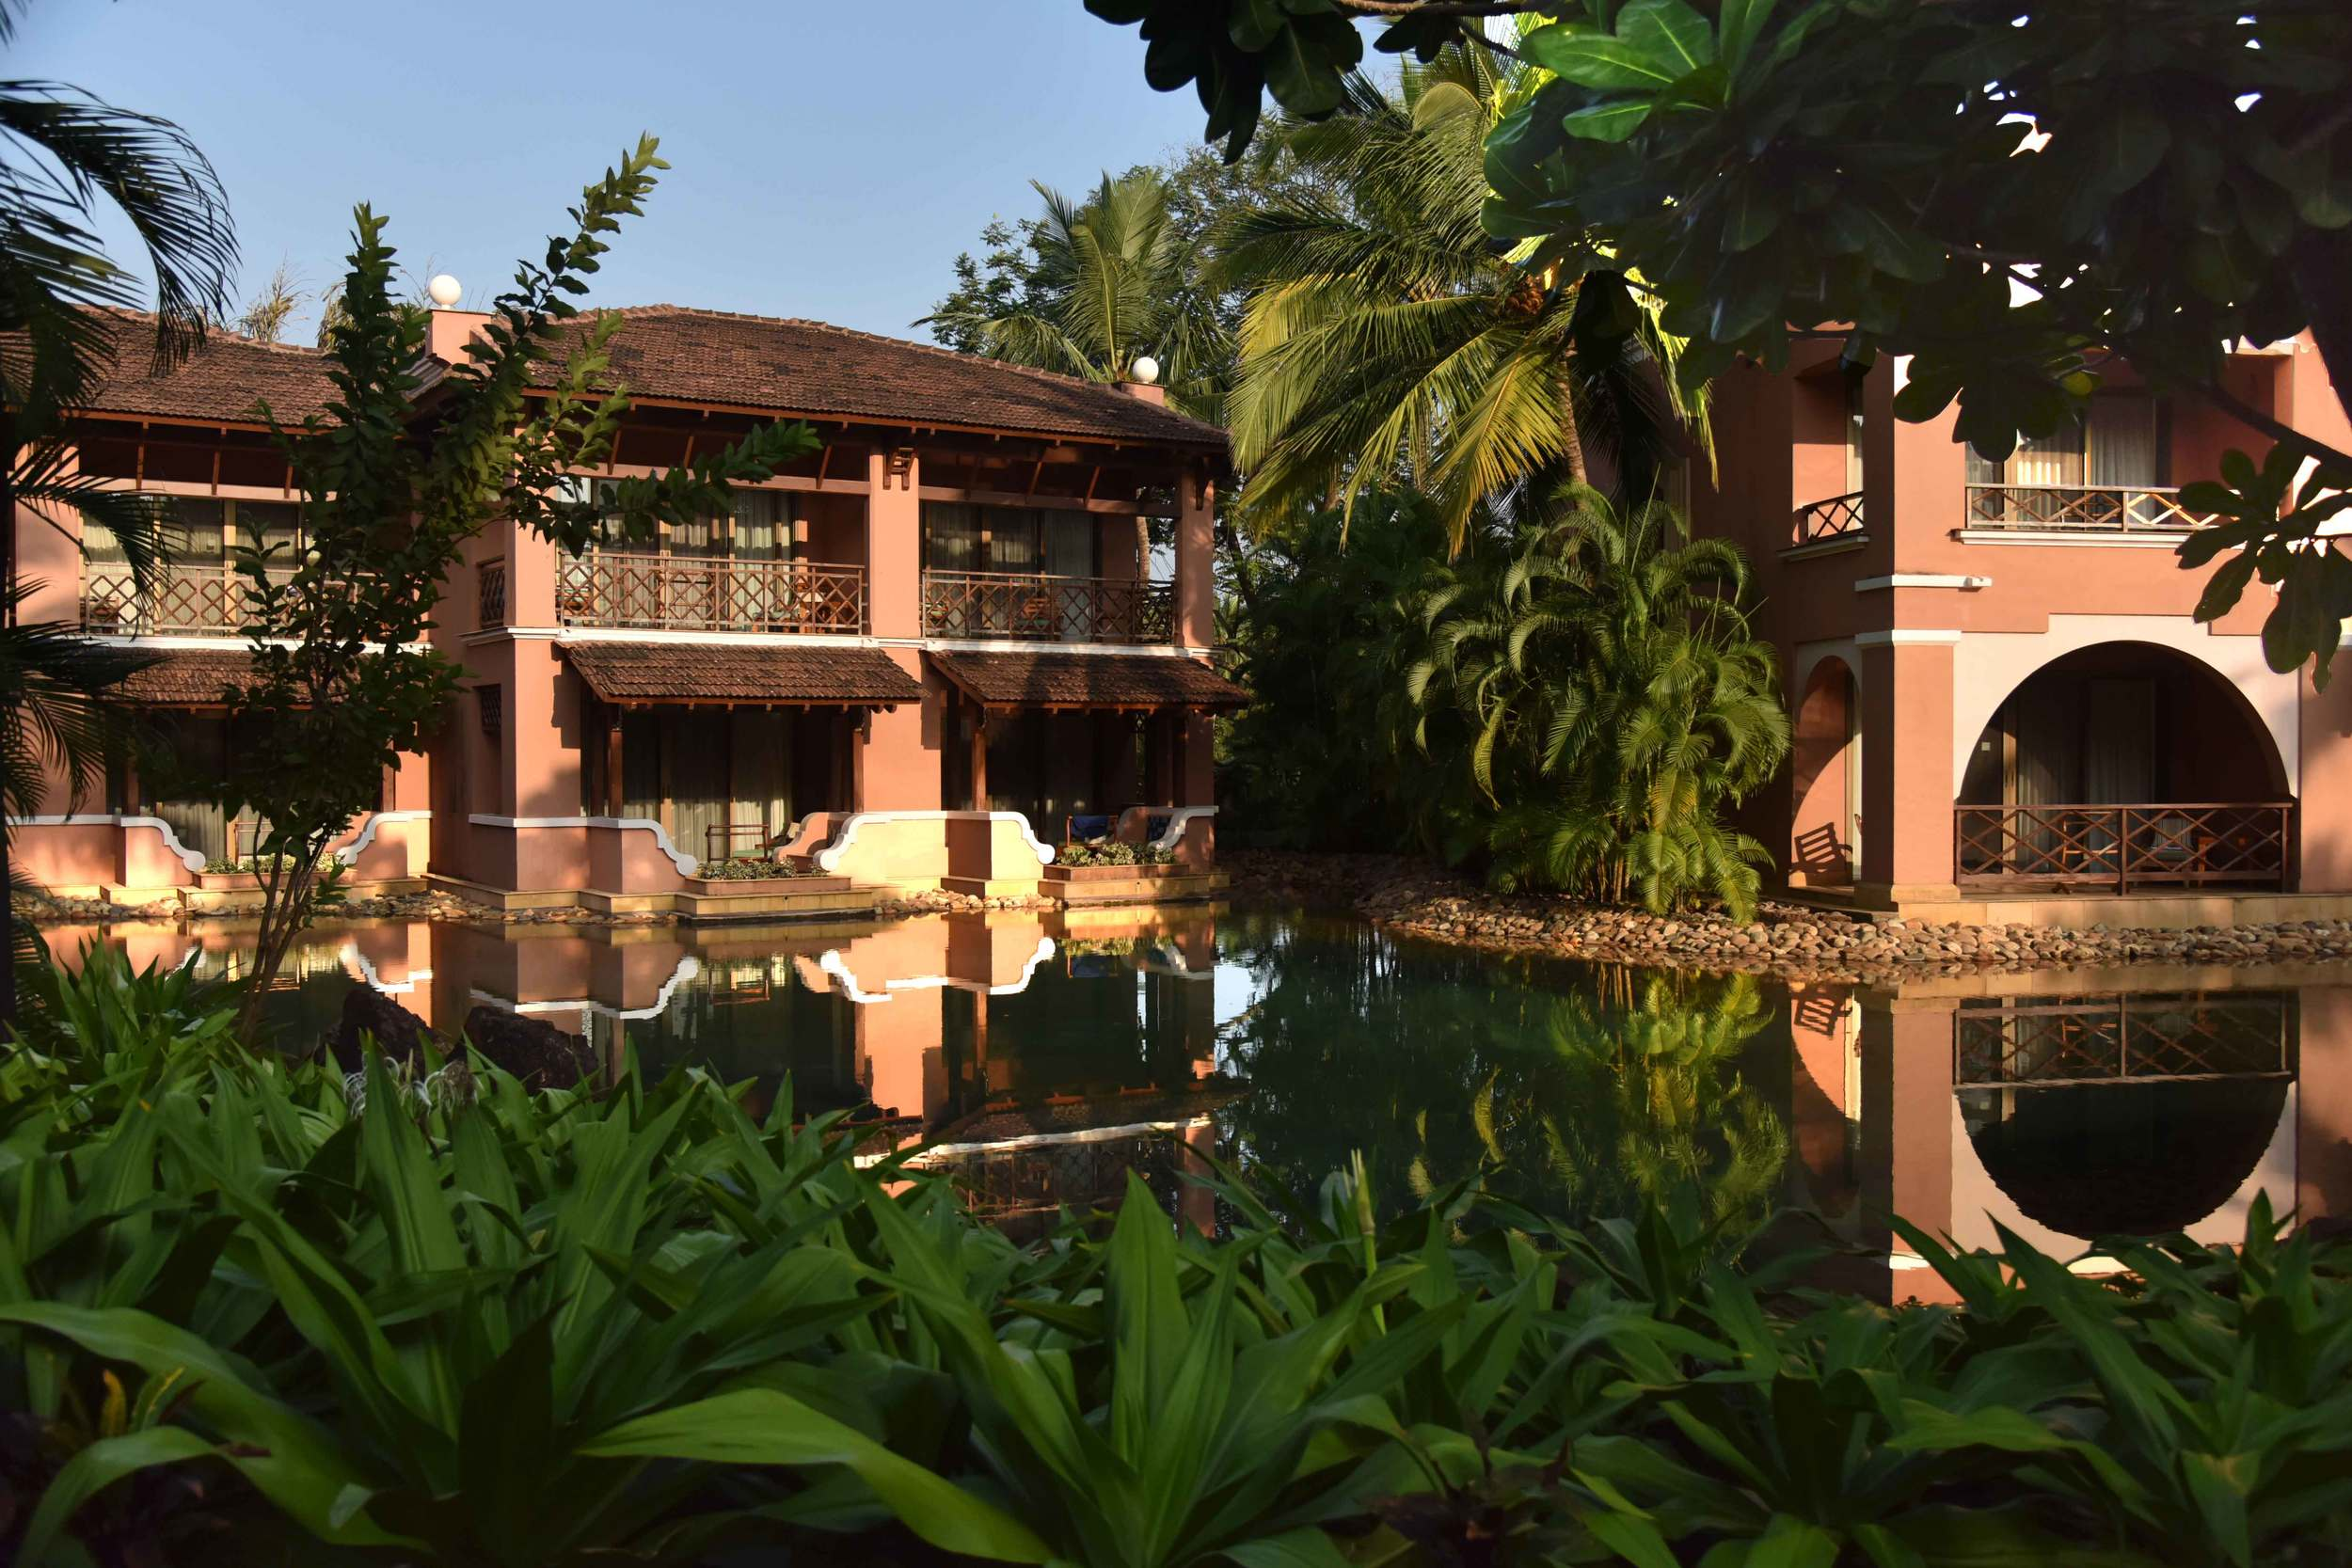 Park Hyatt, Goa, India, 5 star hotel, luxury beach resort, spa. Image©thingstodot.com